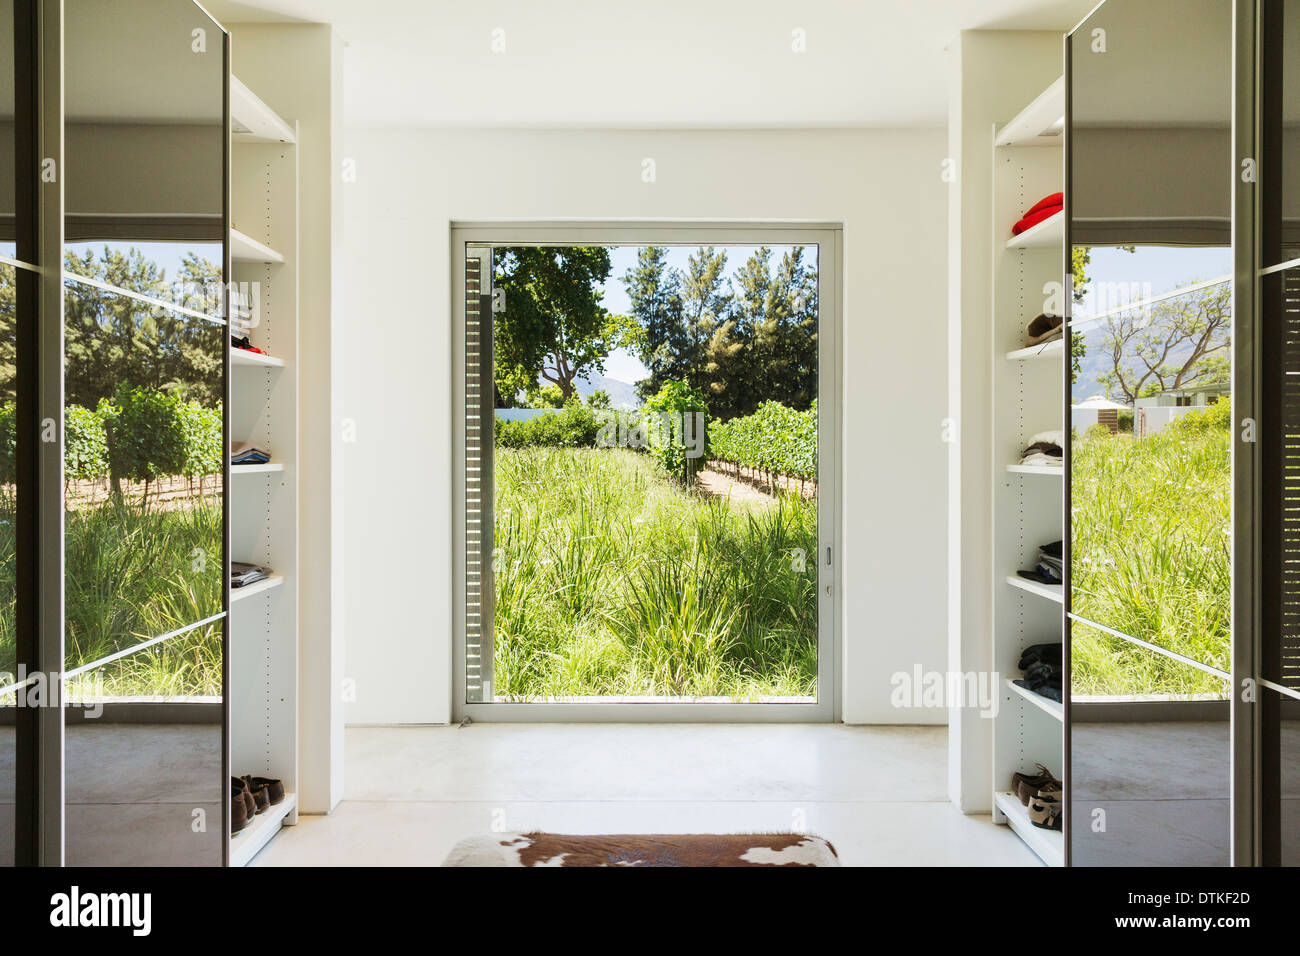 Mirrored closets framing window with view of vineyards Stock Photo ...